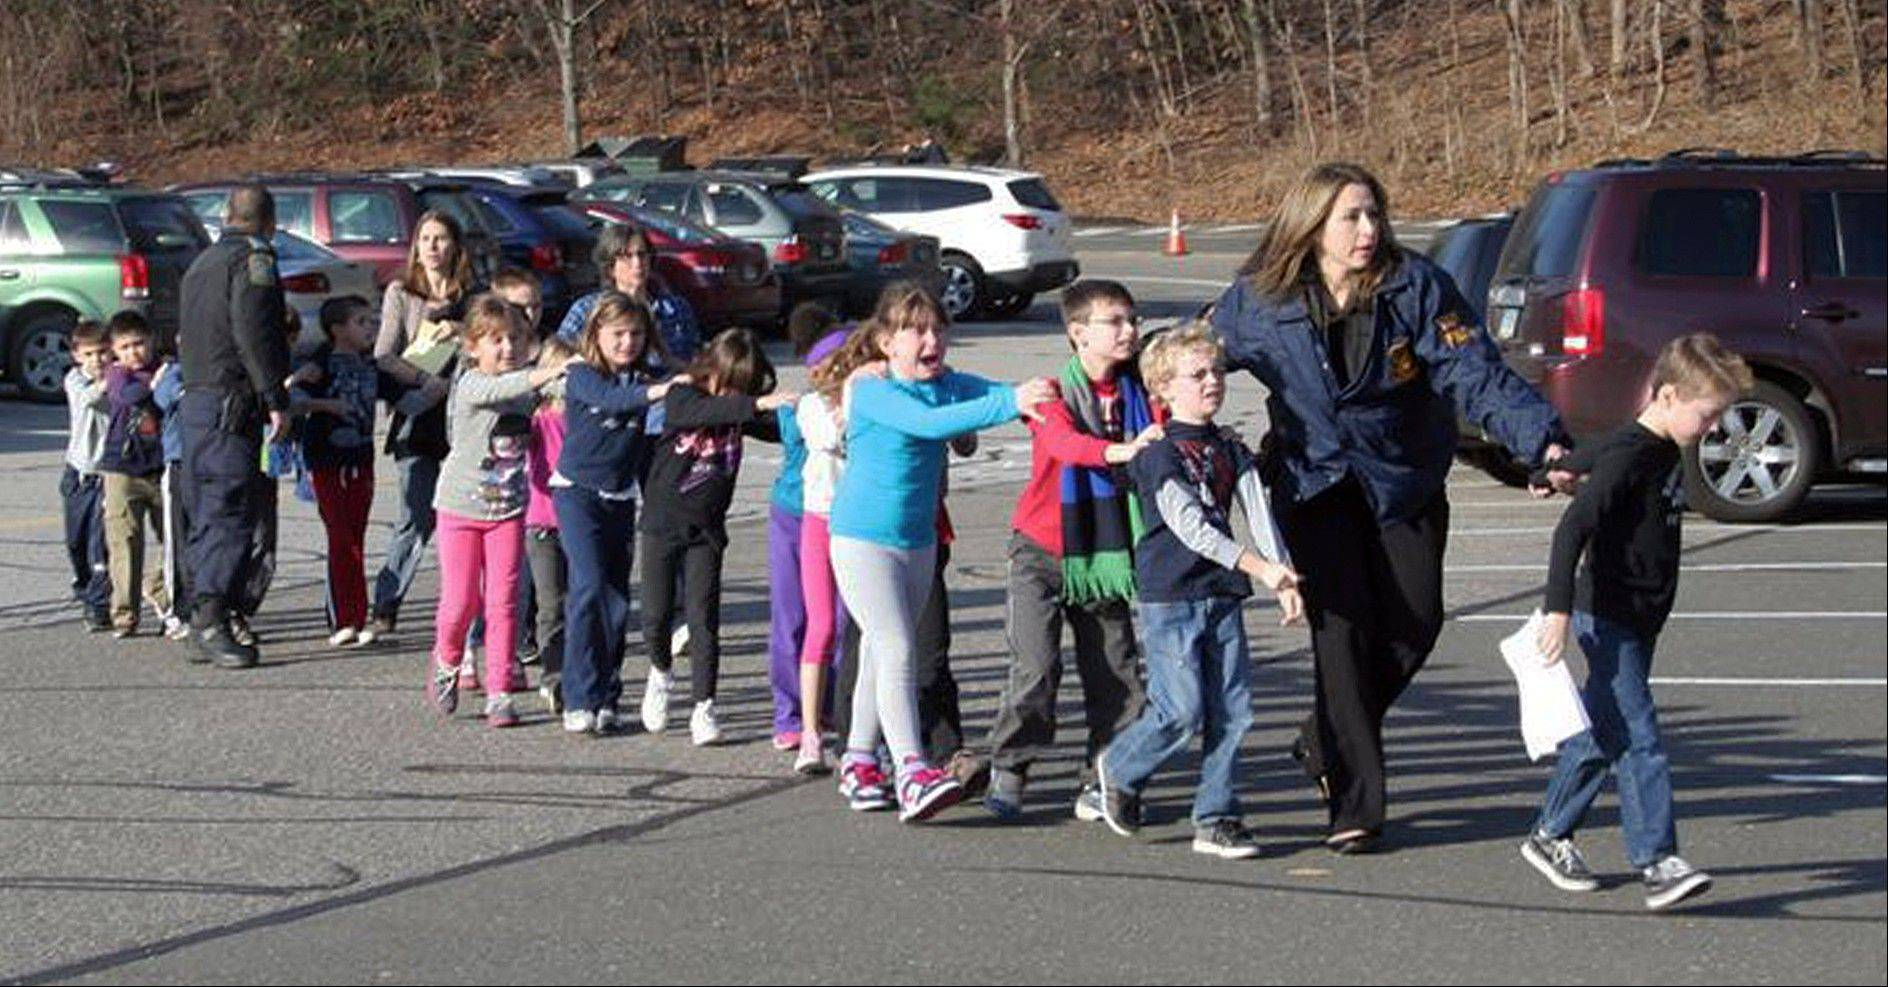 Despite safety emphasis, school shootings continue